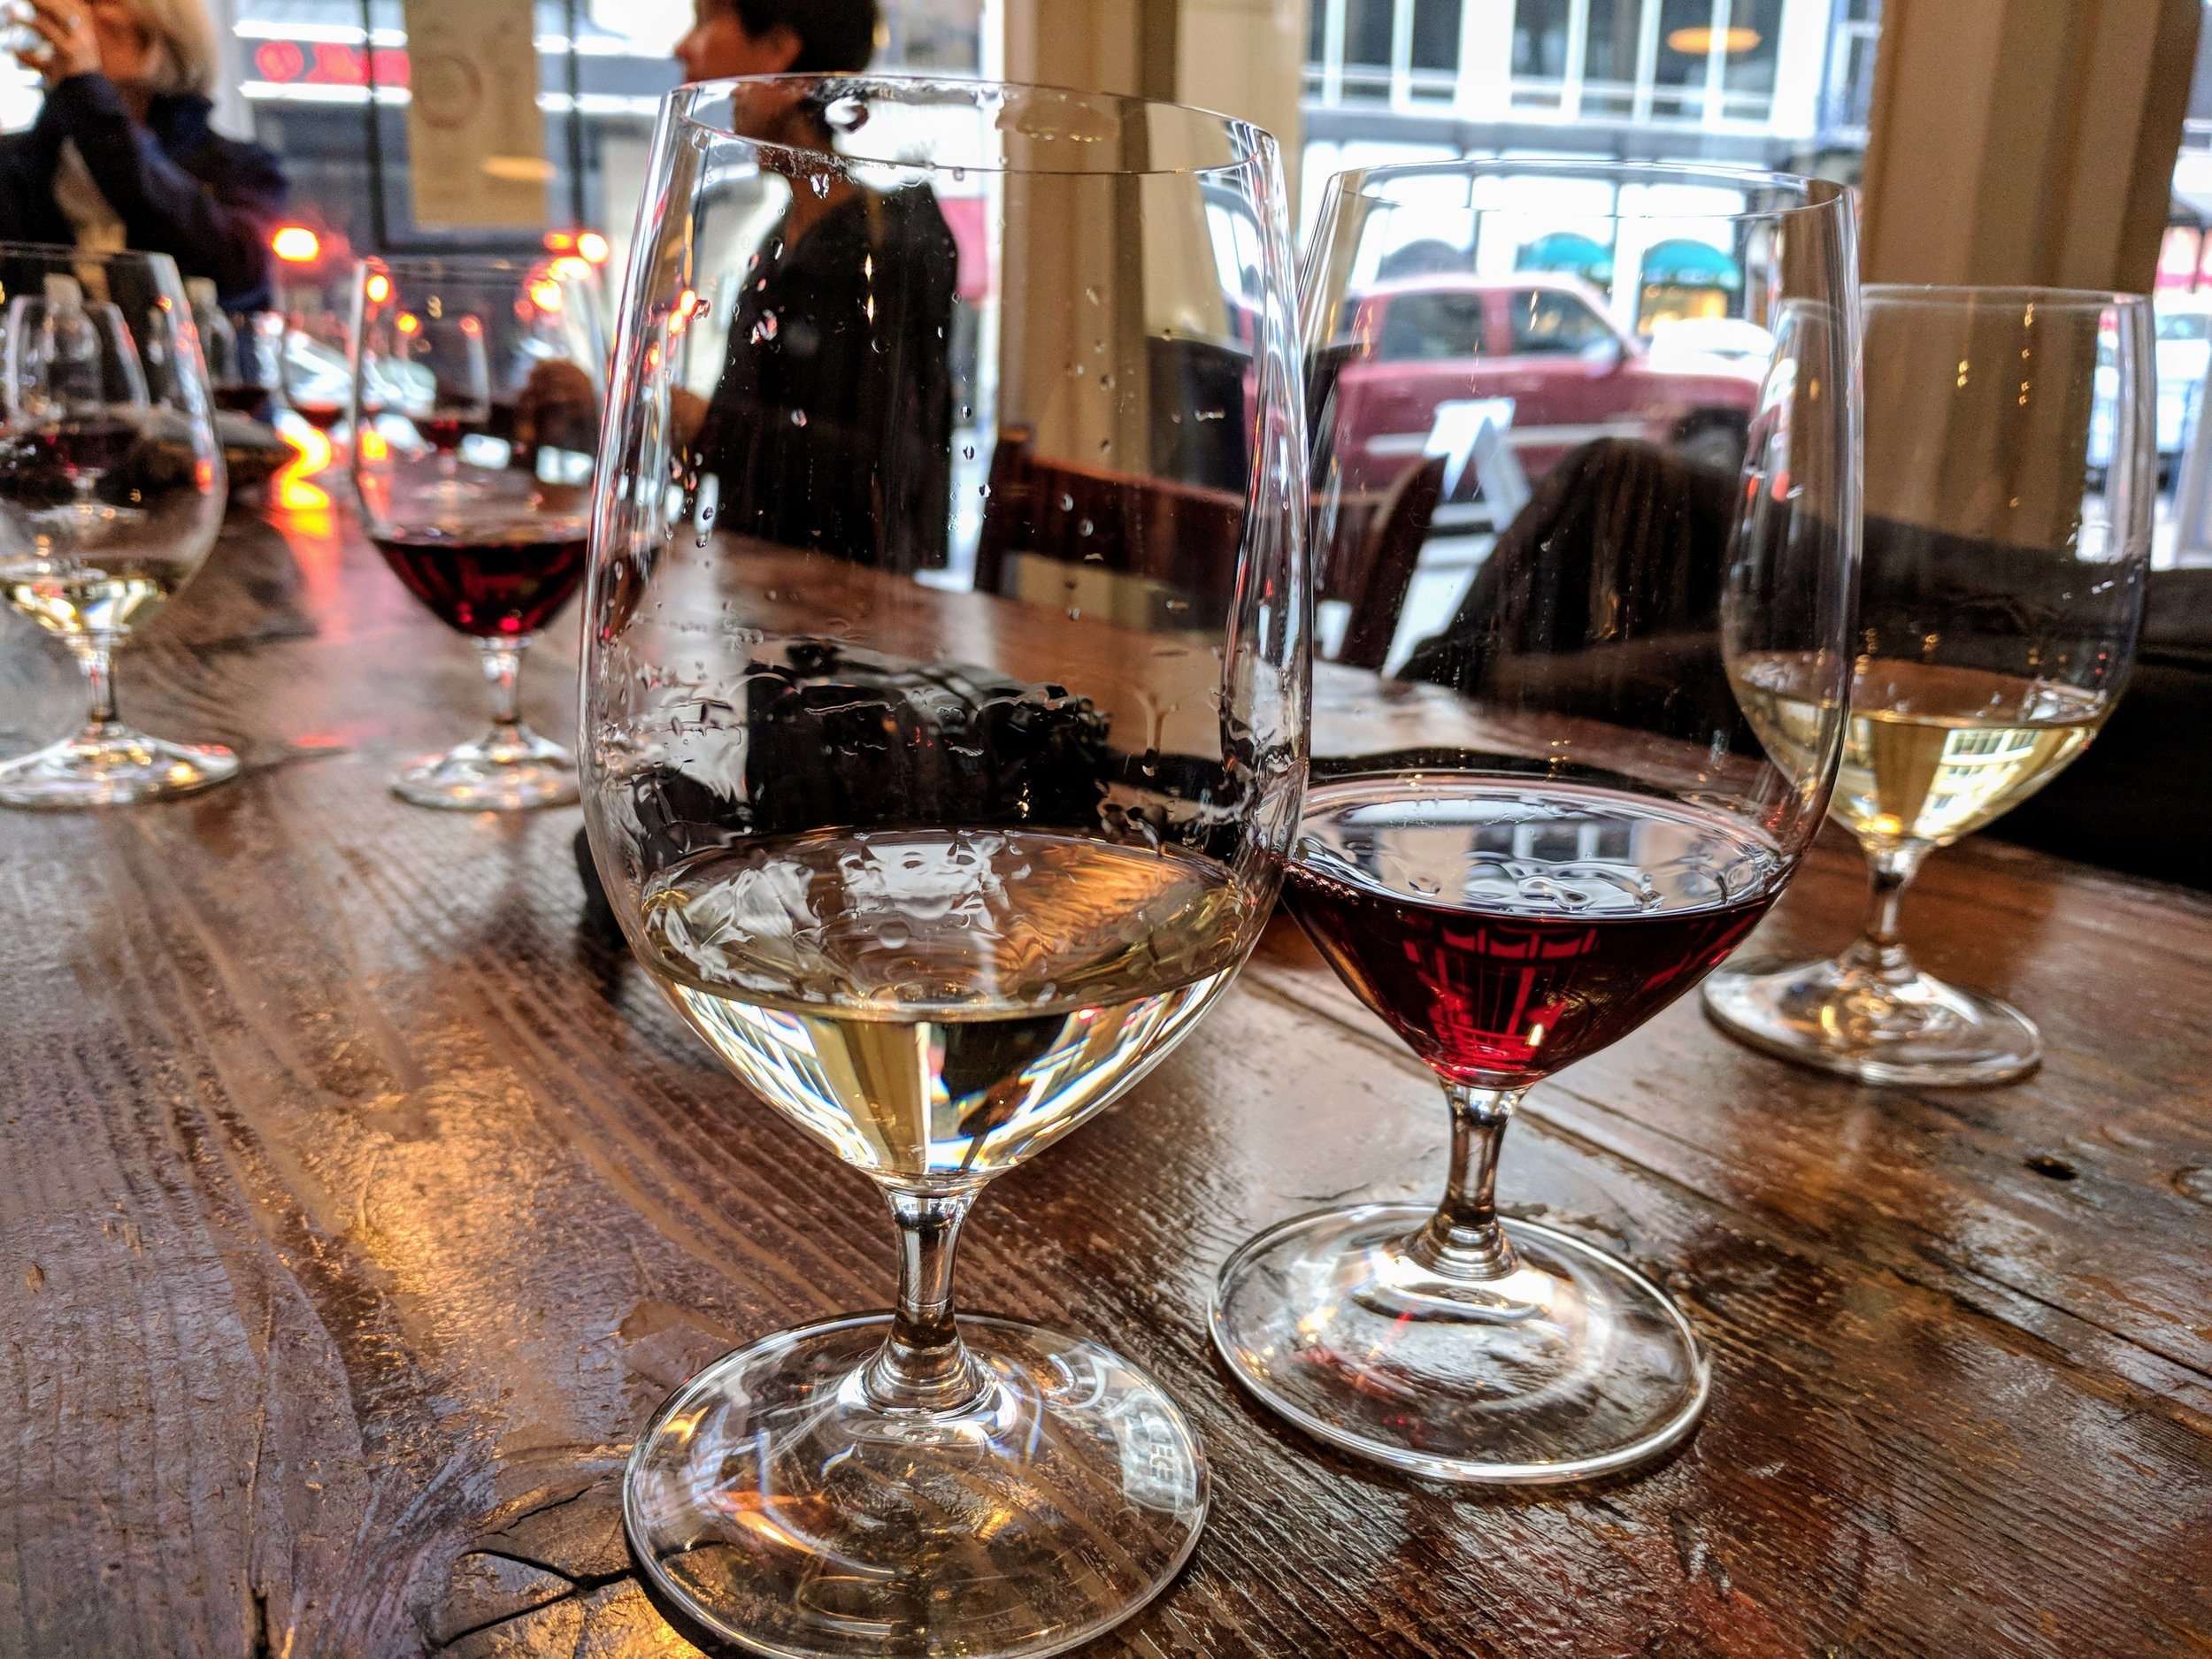 The Libra Wines Pinot Gris (L), and the Stoller Family Estate Pinot Noir (R)